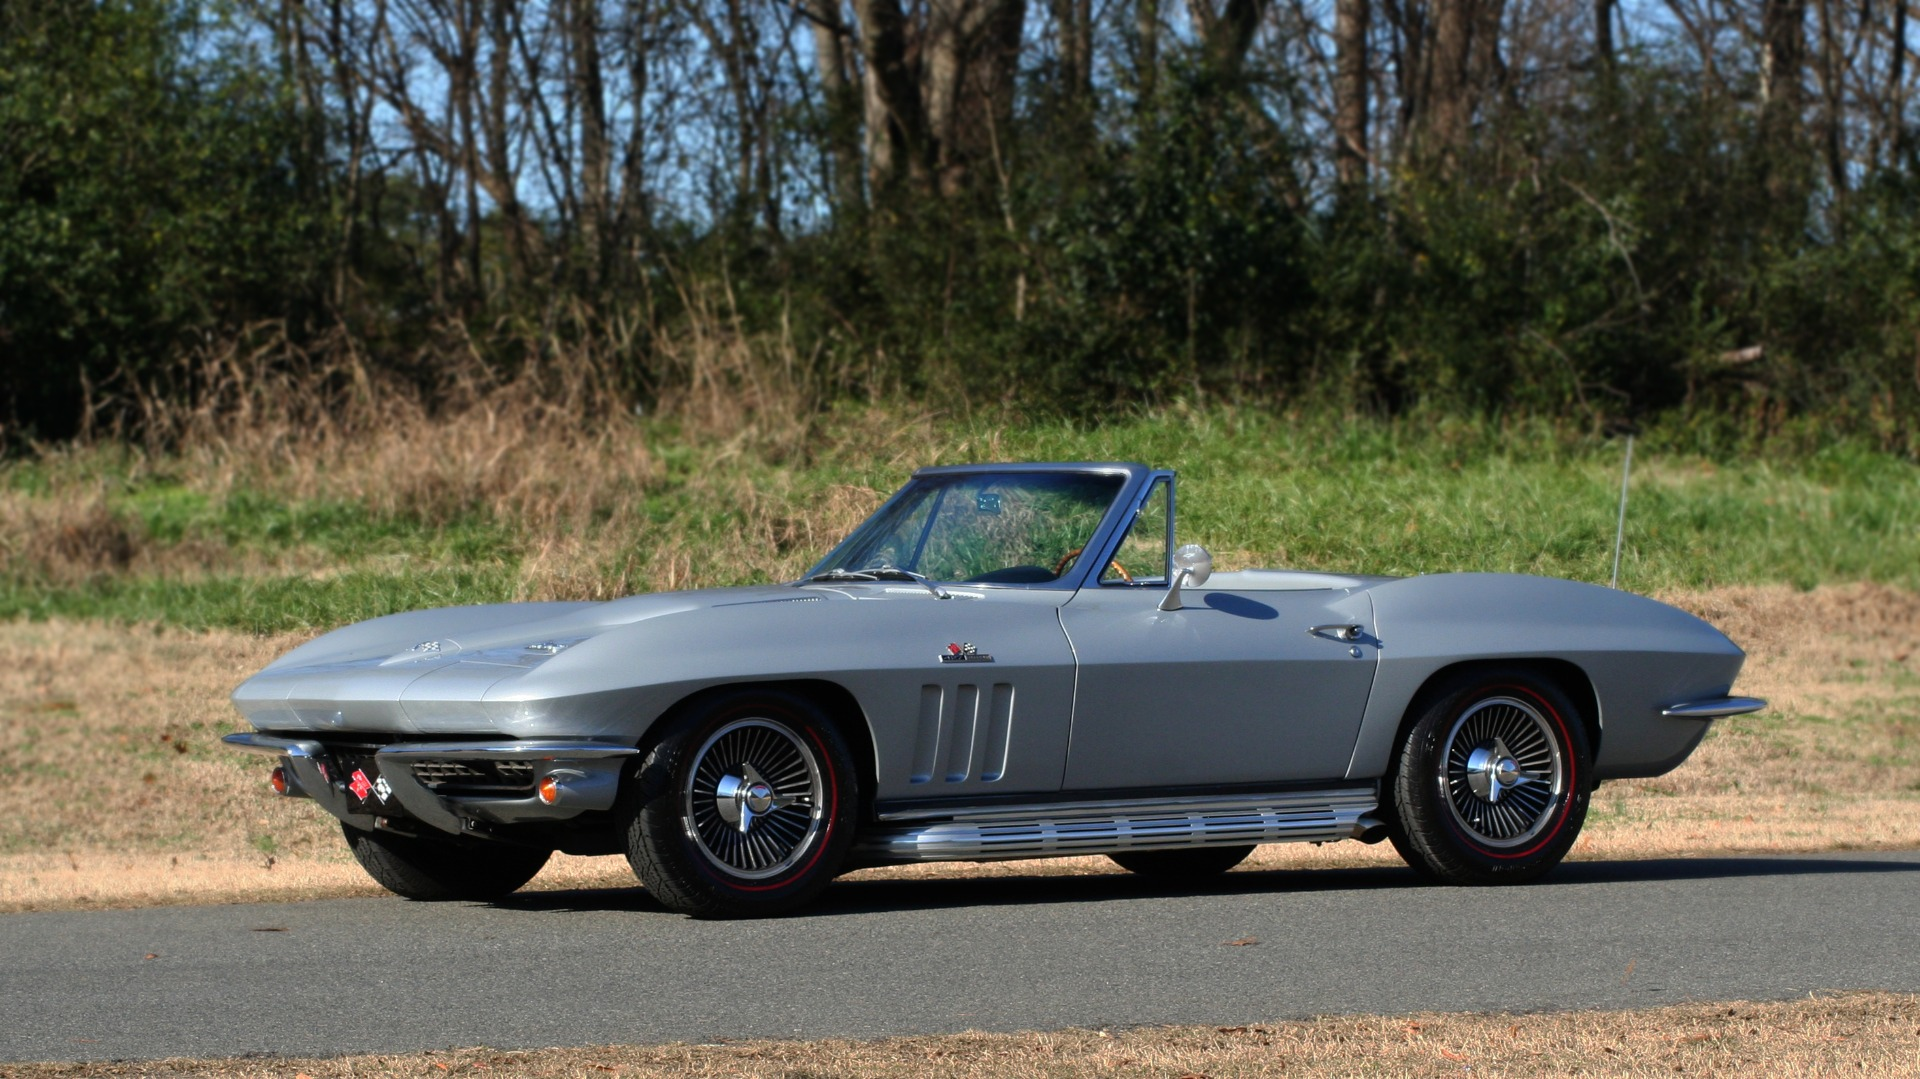 Used 1966 Chevrolet CORVETTE STINGRAY CONVERTIBLE 427 / 4-SPD / NUMBER MATCHING for sale Sold at Formula Imports in Charlotte NC 28227 2